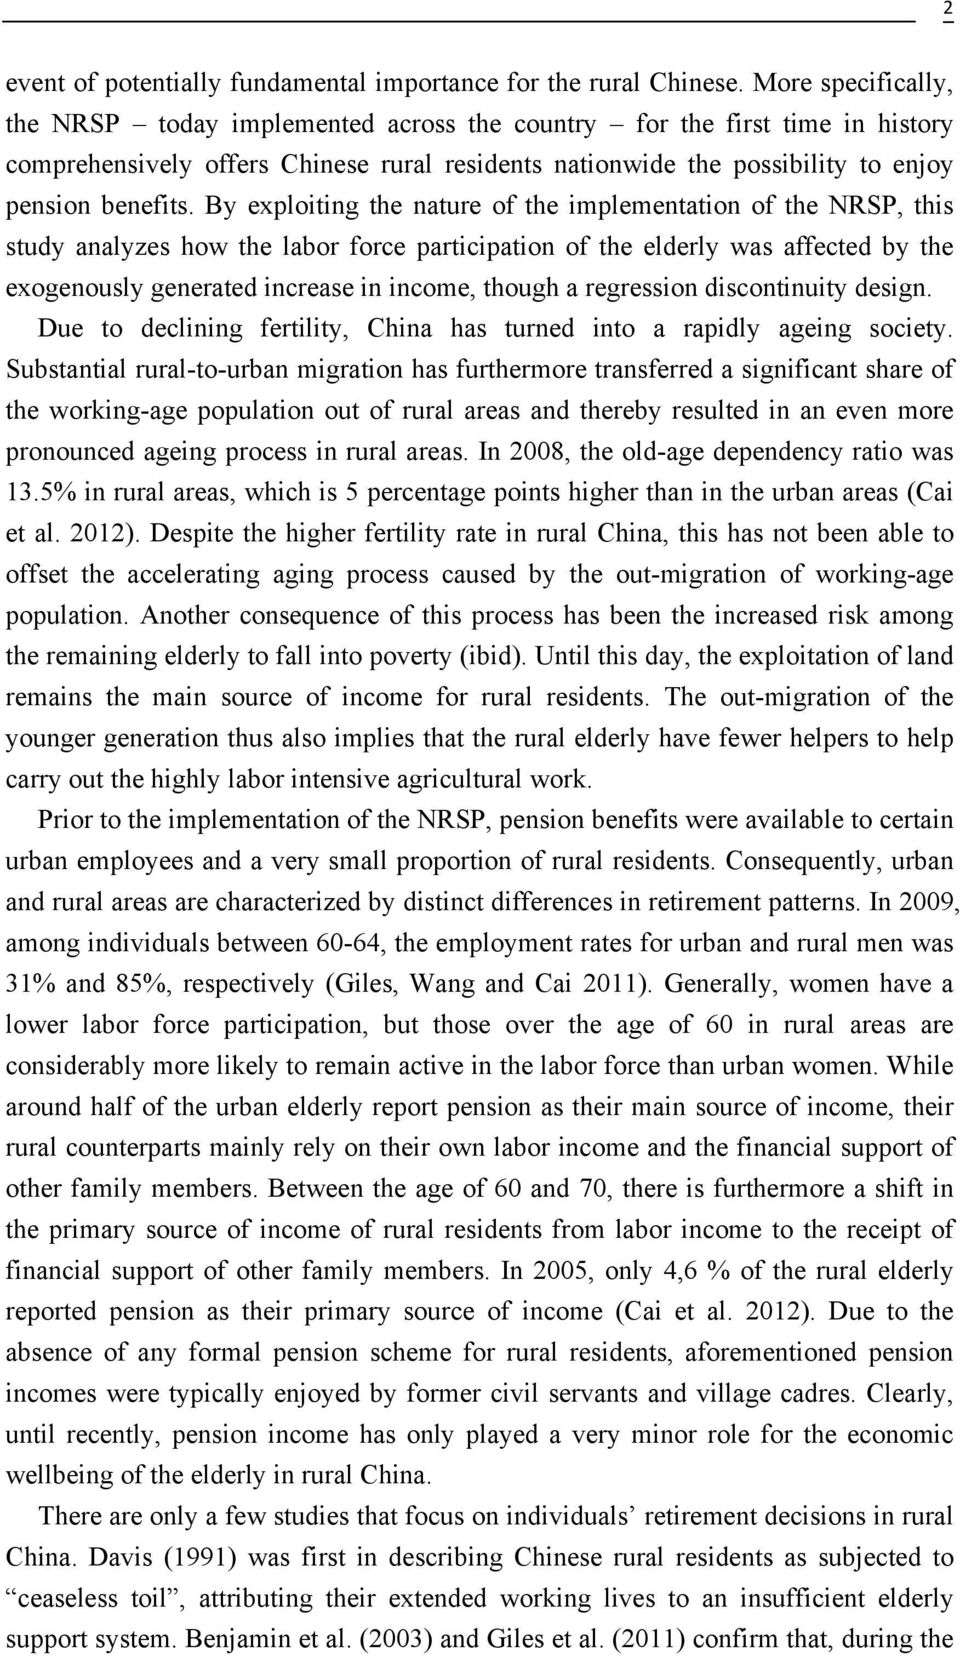 By exploiting the nature of the implementation of the NRSP, this study analyzes how the labor force participation of the elderly was affected by the exogenously generated increase in income, though a